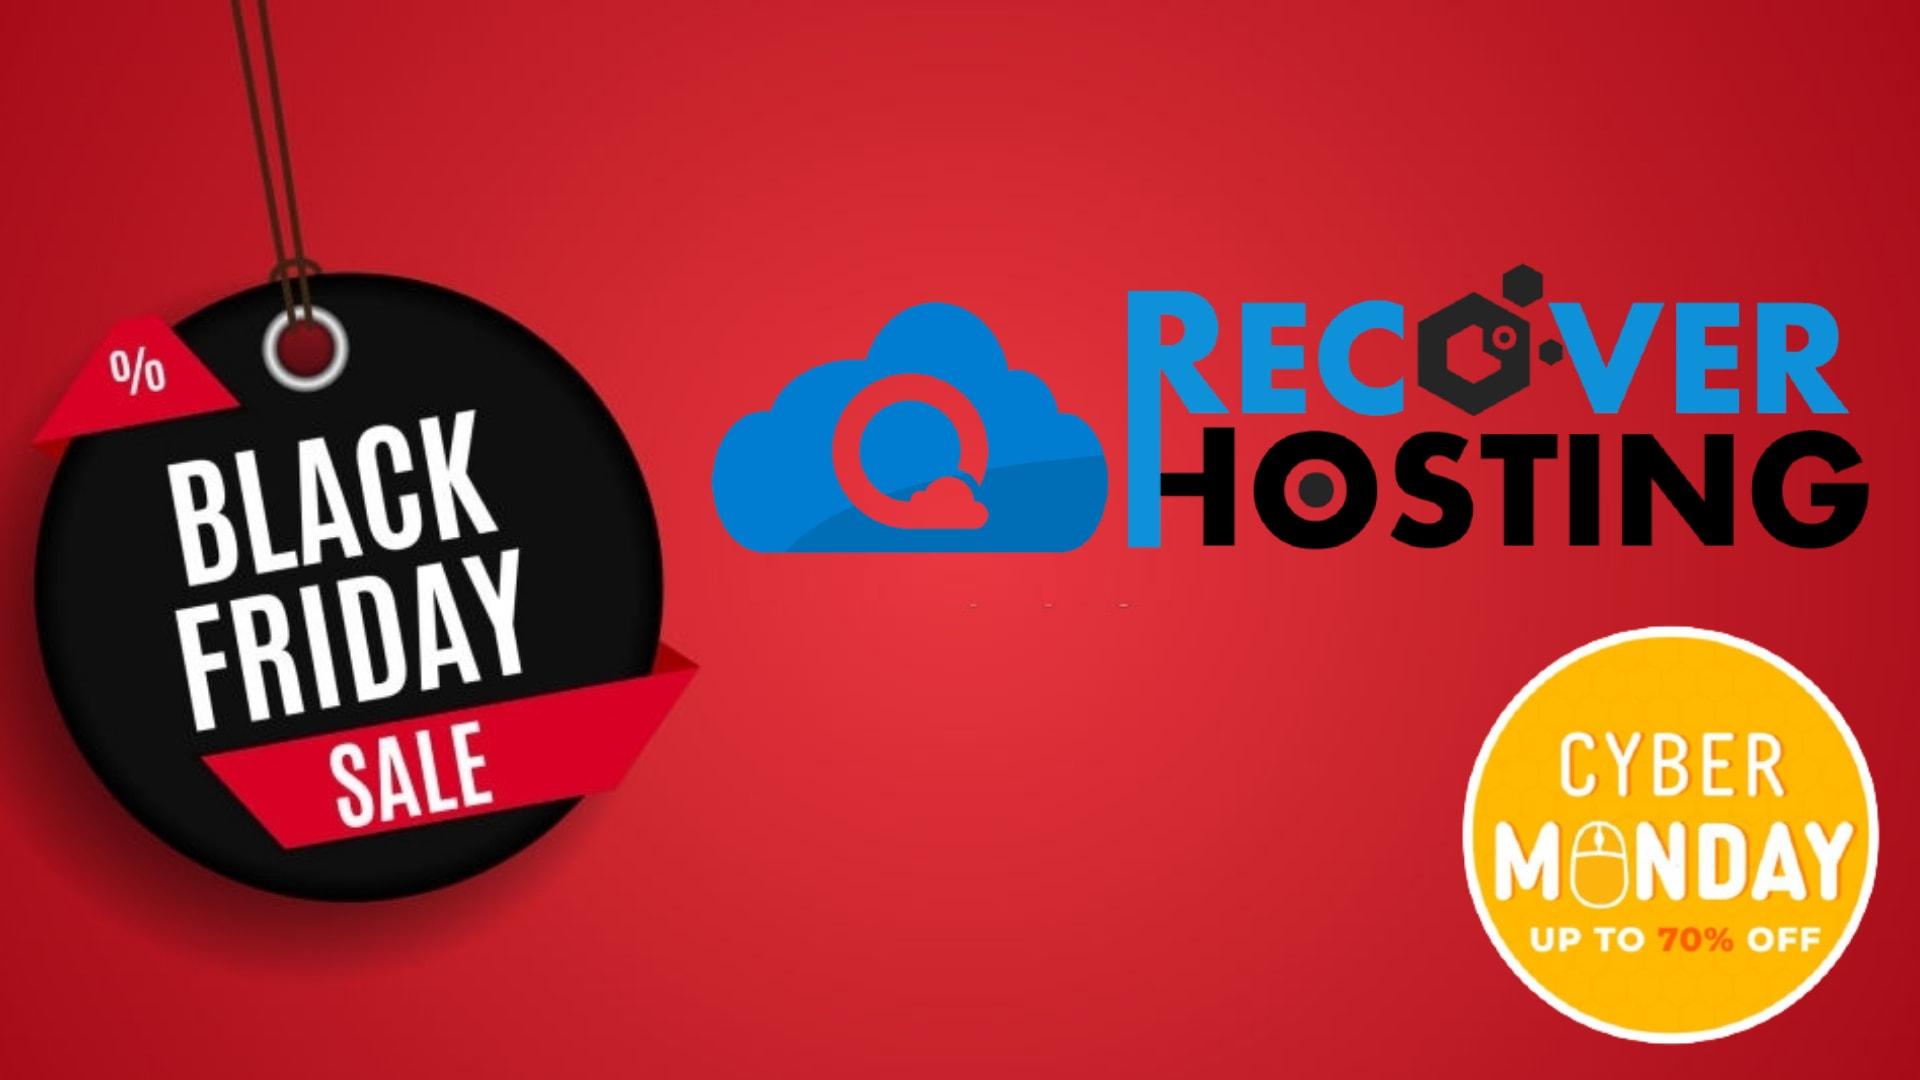 RecoverHosting Black Friday Deals 2020 - Top 10 Black Friday Hosting Deals 2020